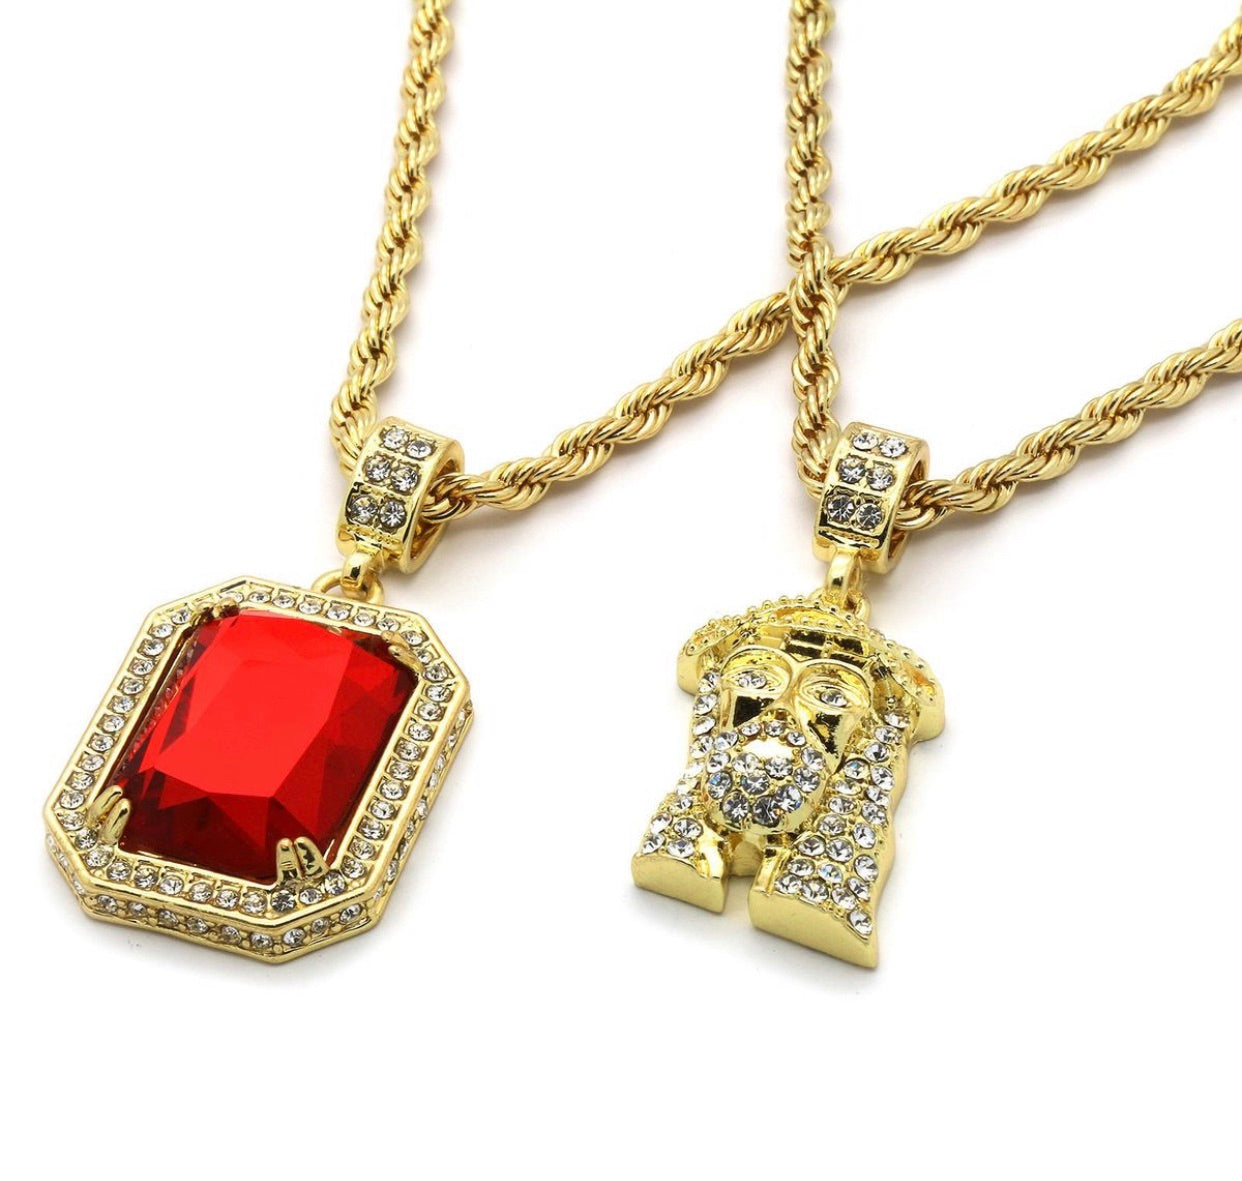 "14k Gold  Hip Hop Jesus Head & Ruby Necklace & 16"" Iced Cuban Choker Chain set - A&M"